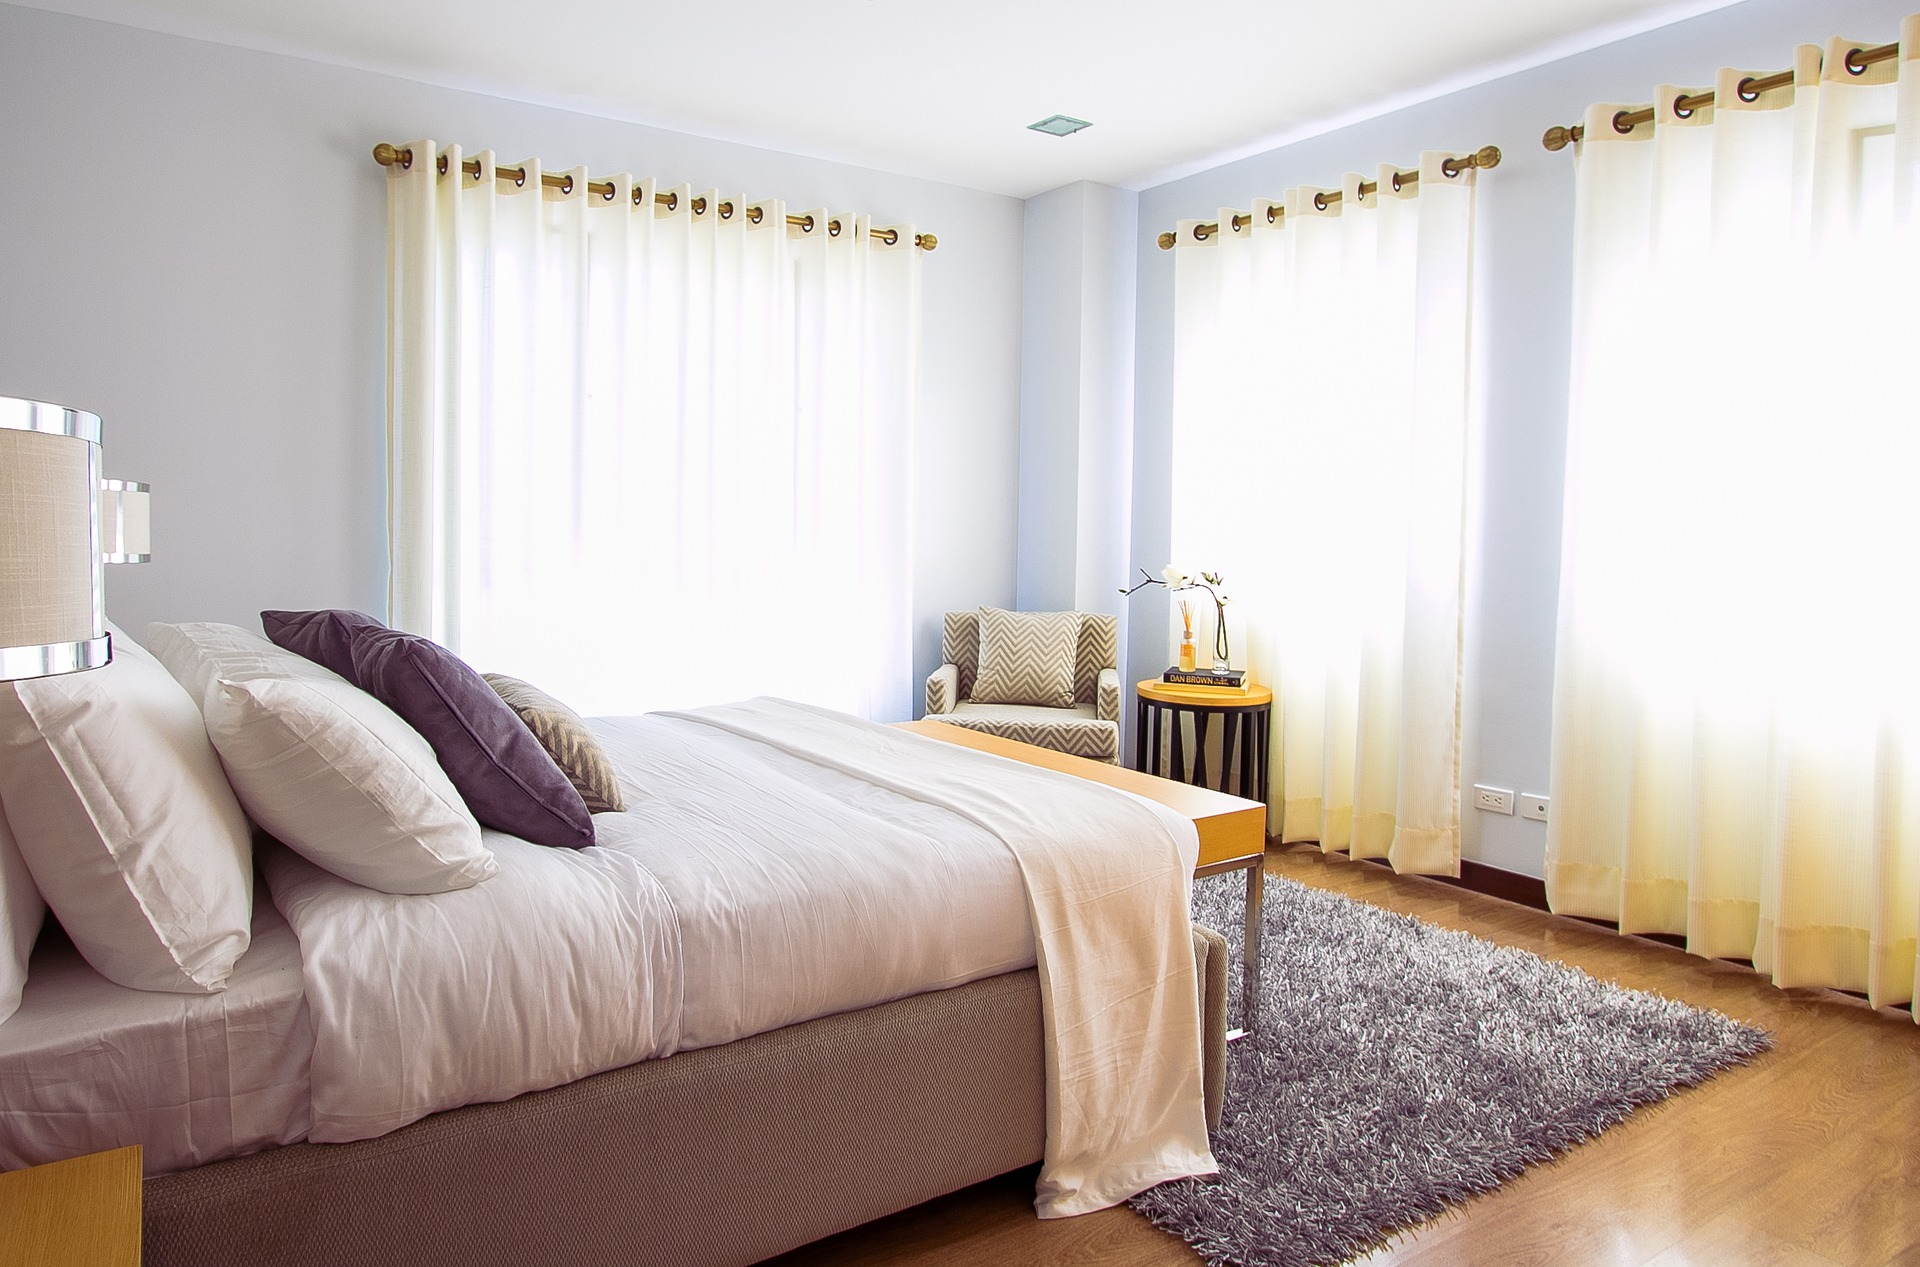 How Glasgow Curtains Can Provide Health Benefits & Better Sleep